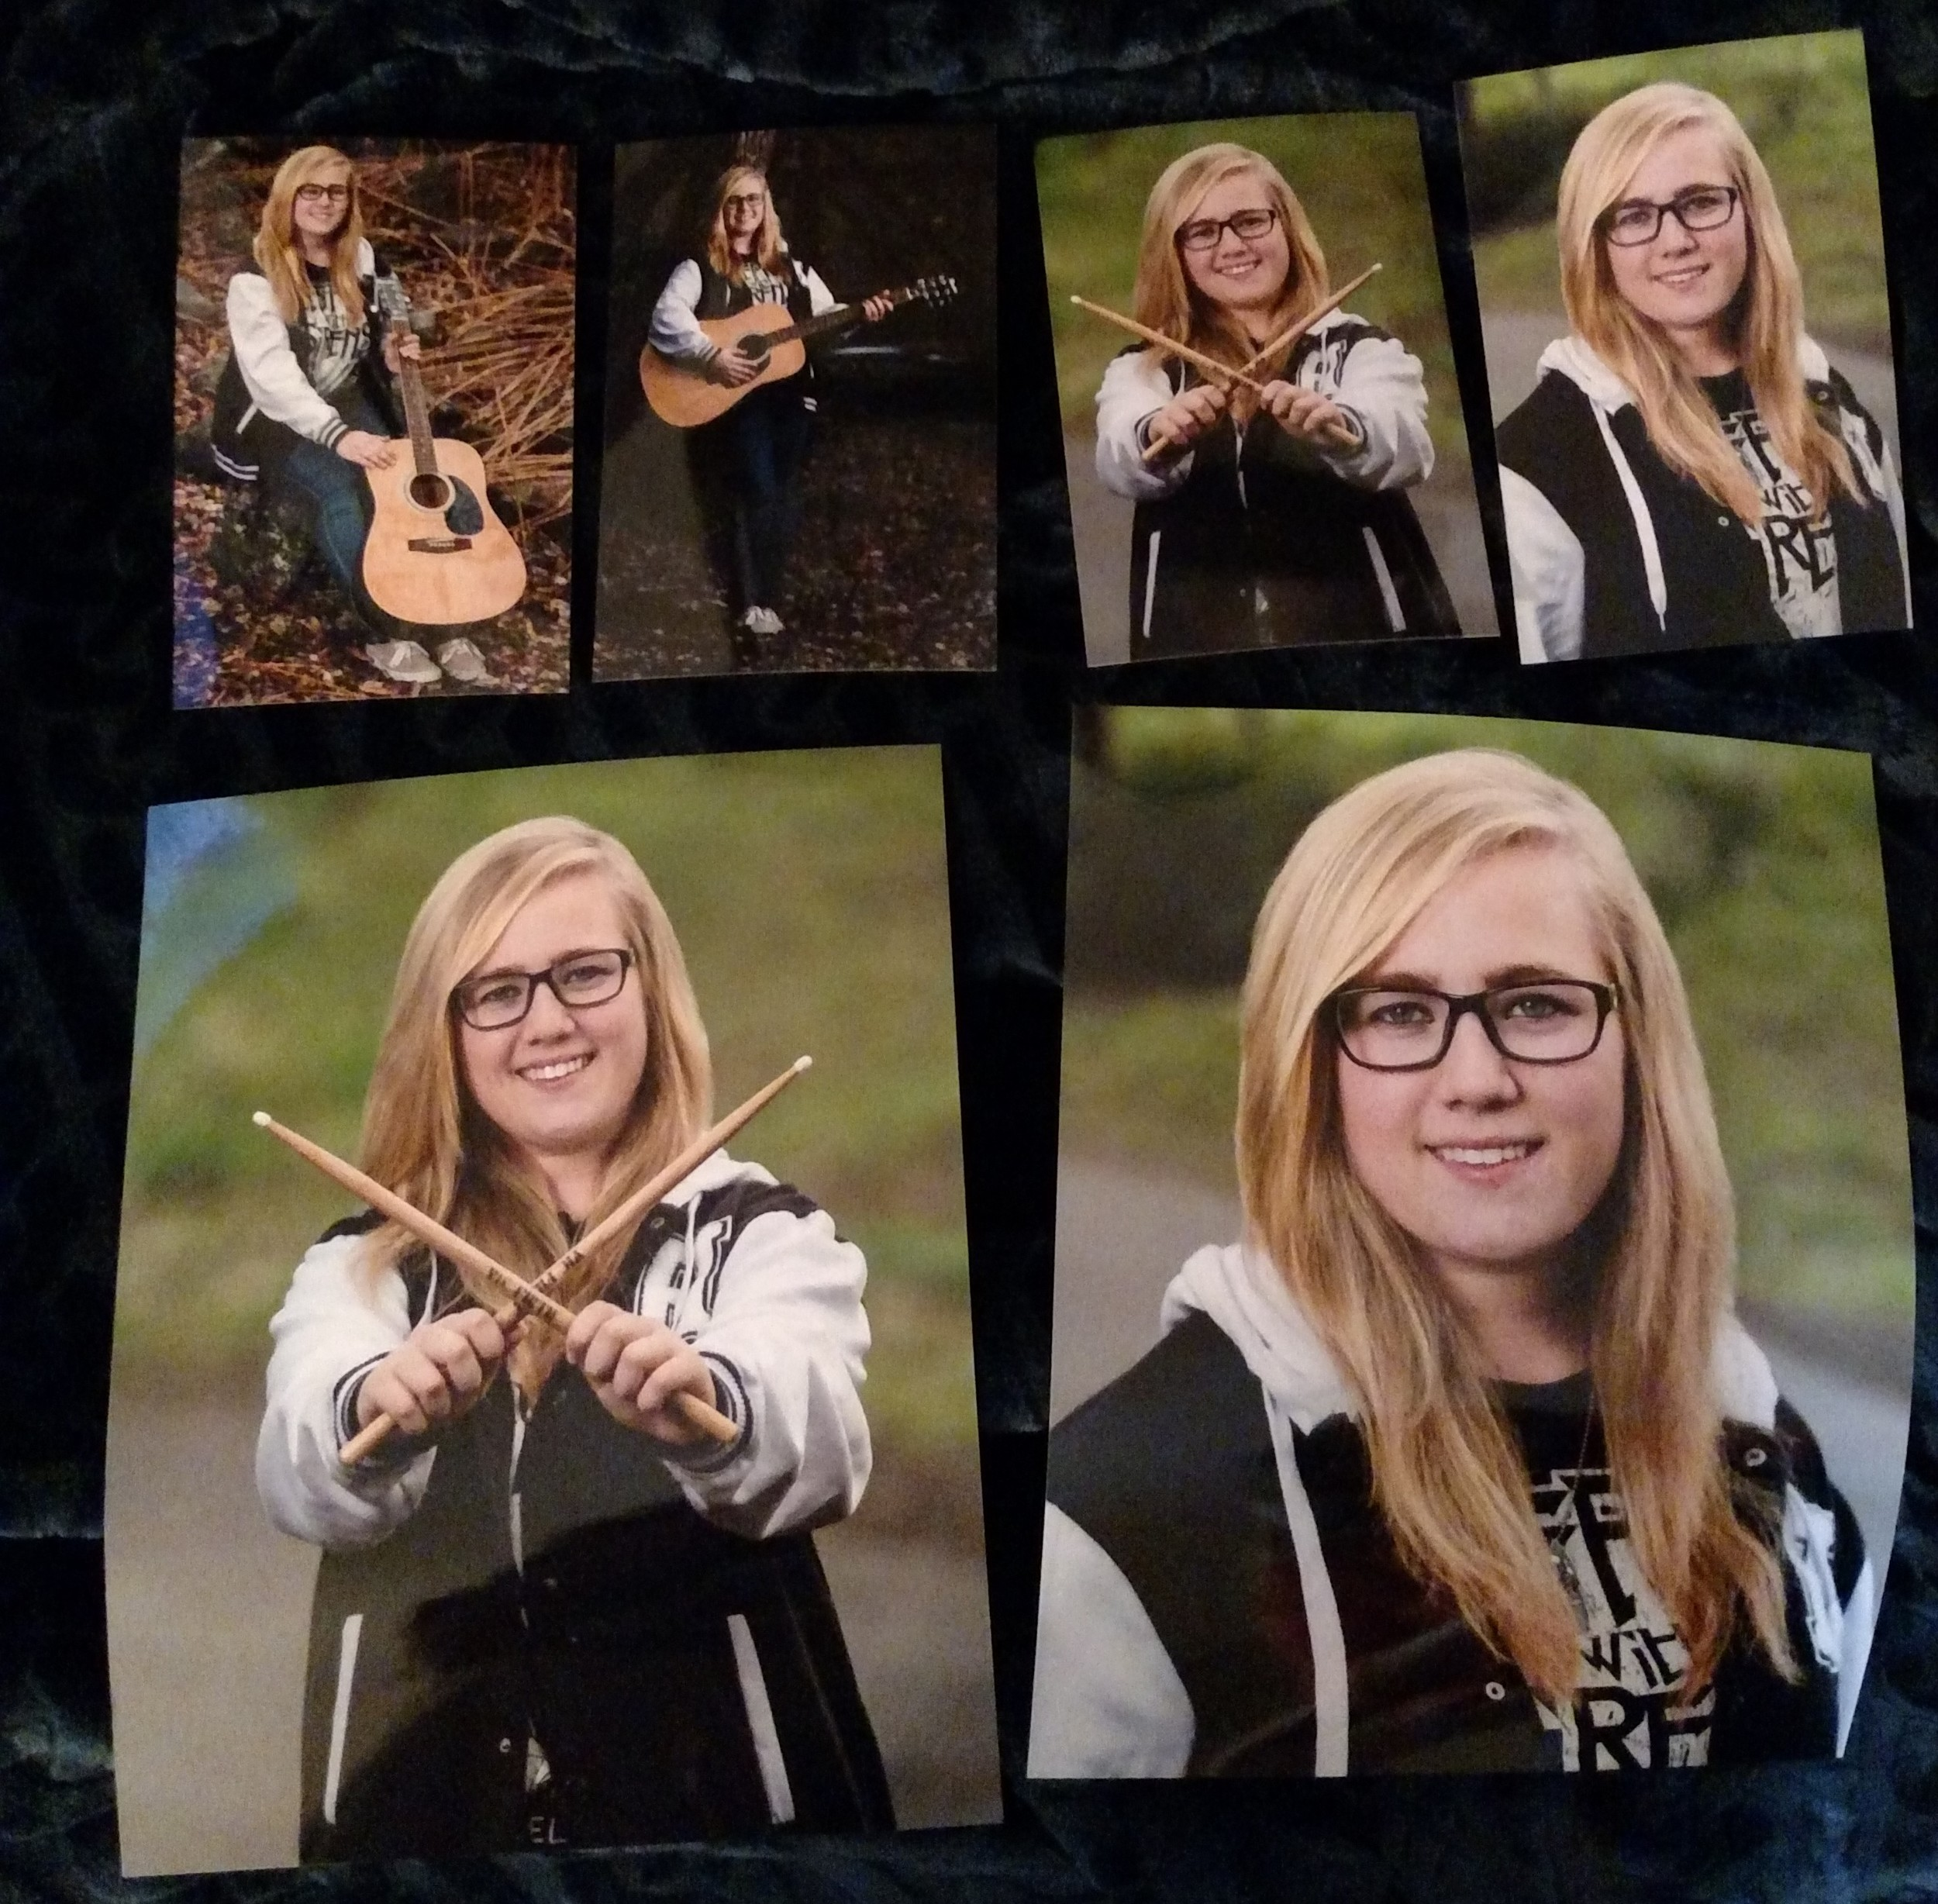 Here's a few prints that I printed of my sister. They're photographs from her senior session.